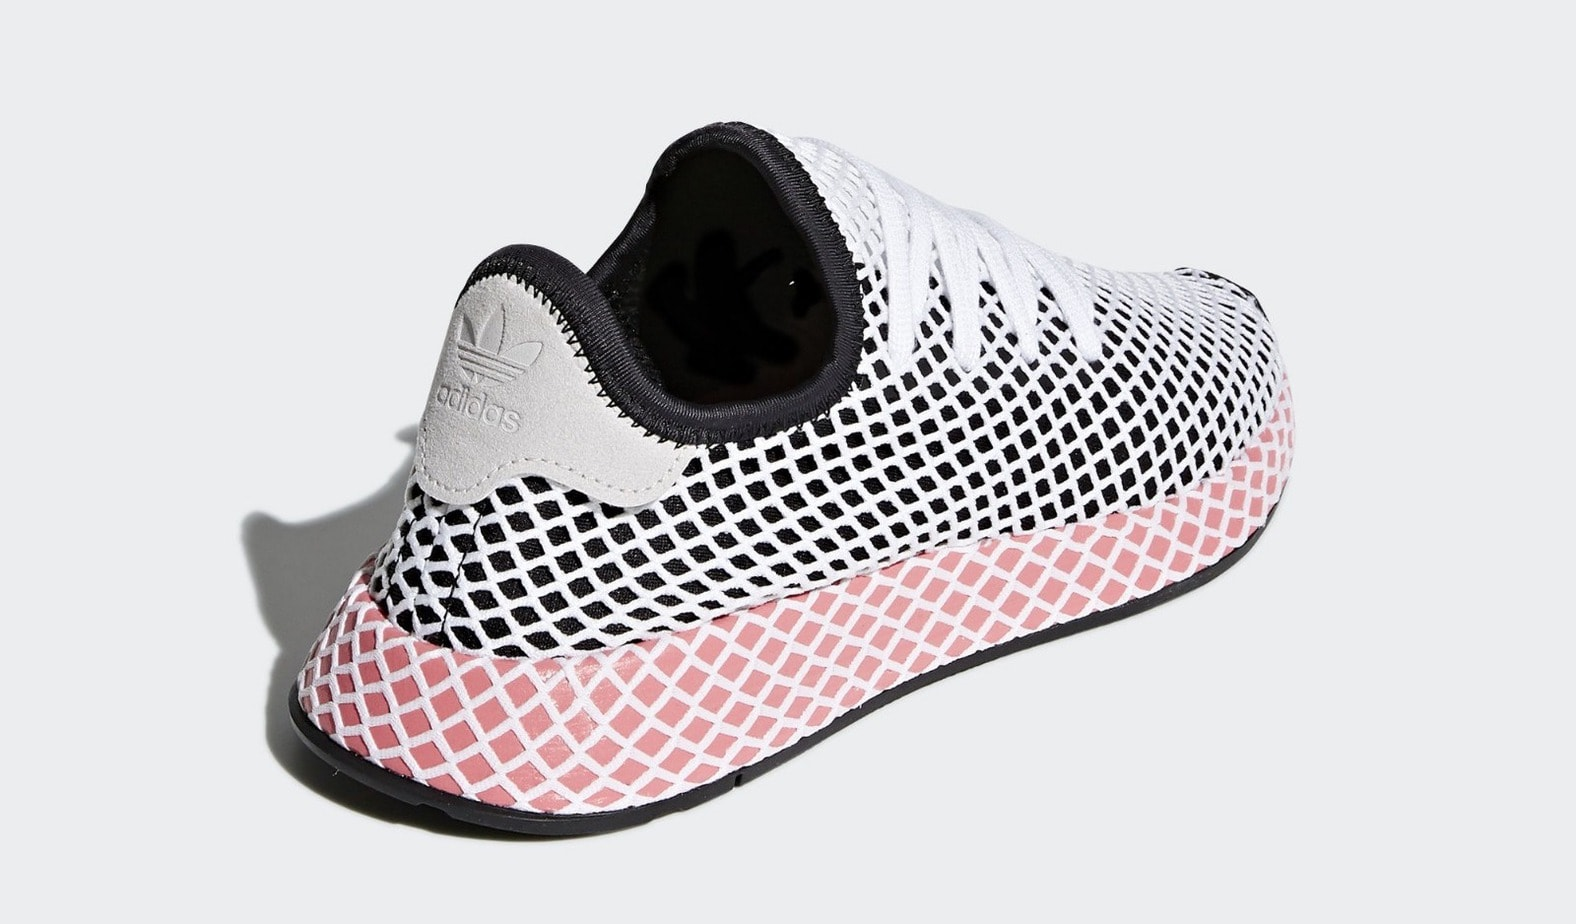 outlet store a3c69 b1fc2 adidas Deerupt Runner PinkOrange Release Date March 22nd, 2018. Price  100. Color Chalk PinkChalk PinkBold Orange Style Code CQ2910